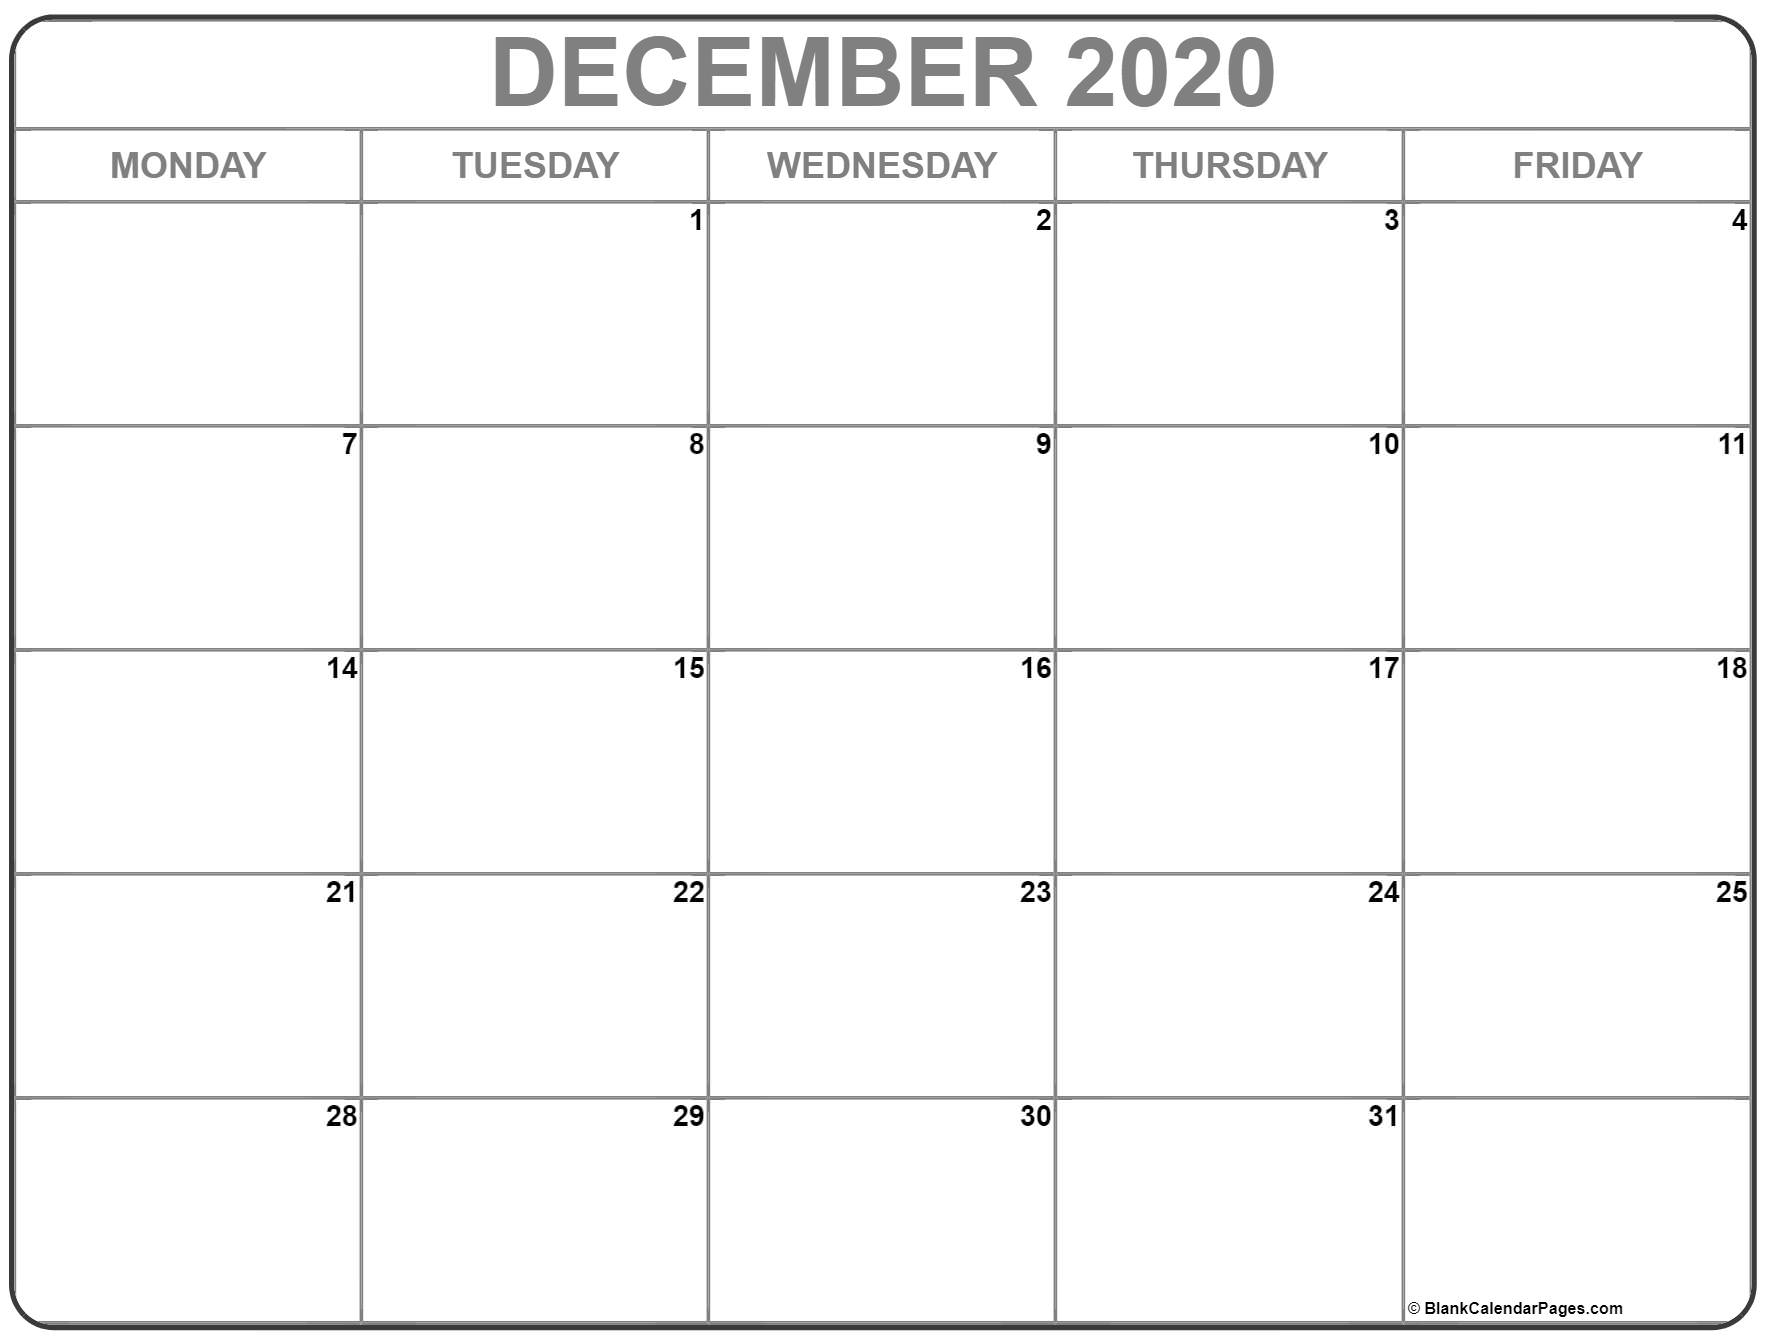 December 2020 Monday Calendar | Monday To Sunday for Saturday Through Friday Calendar